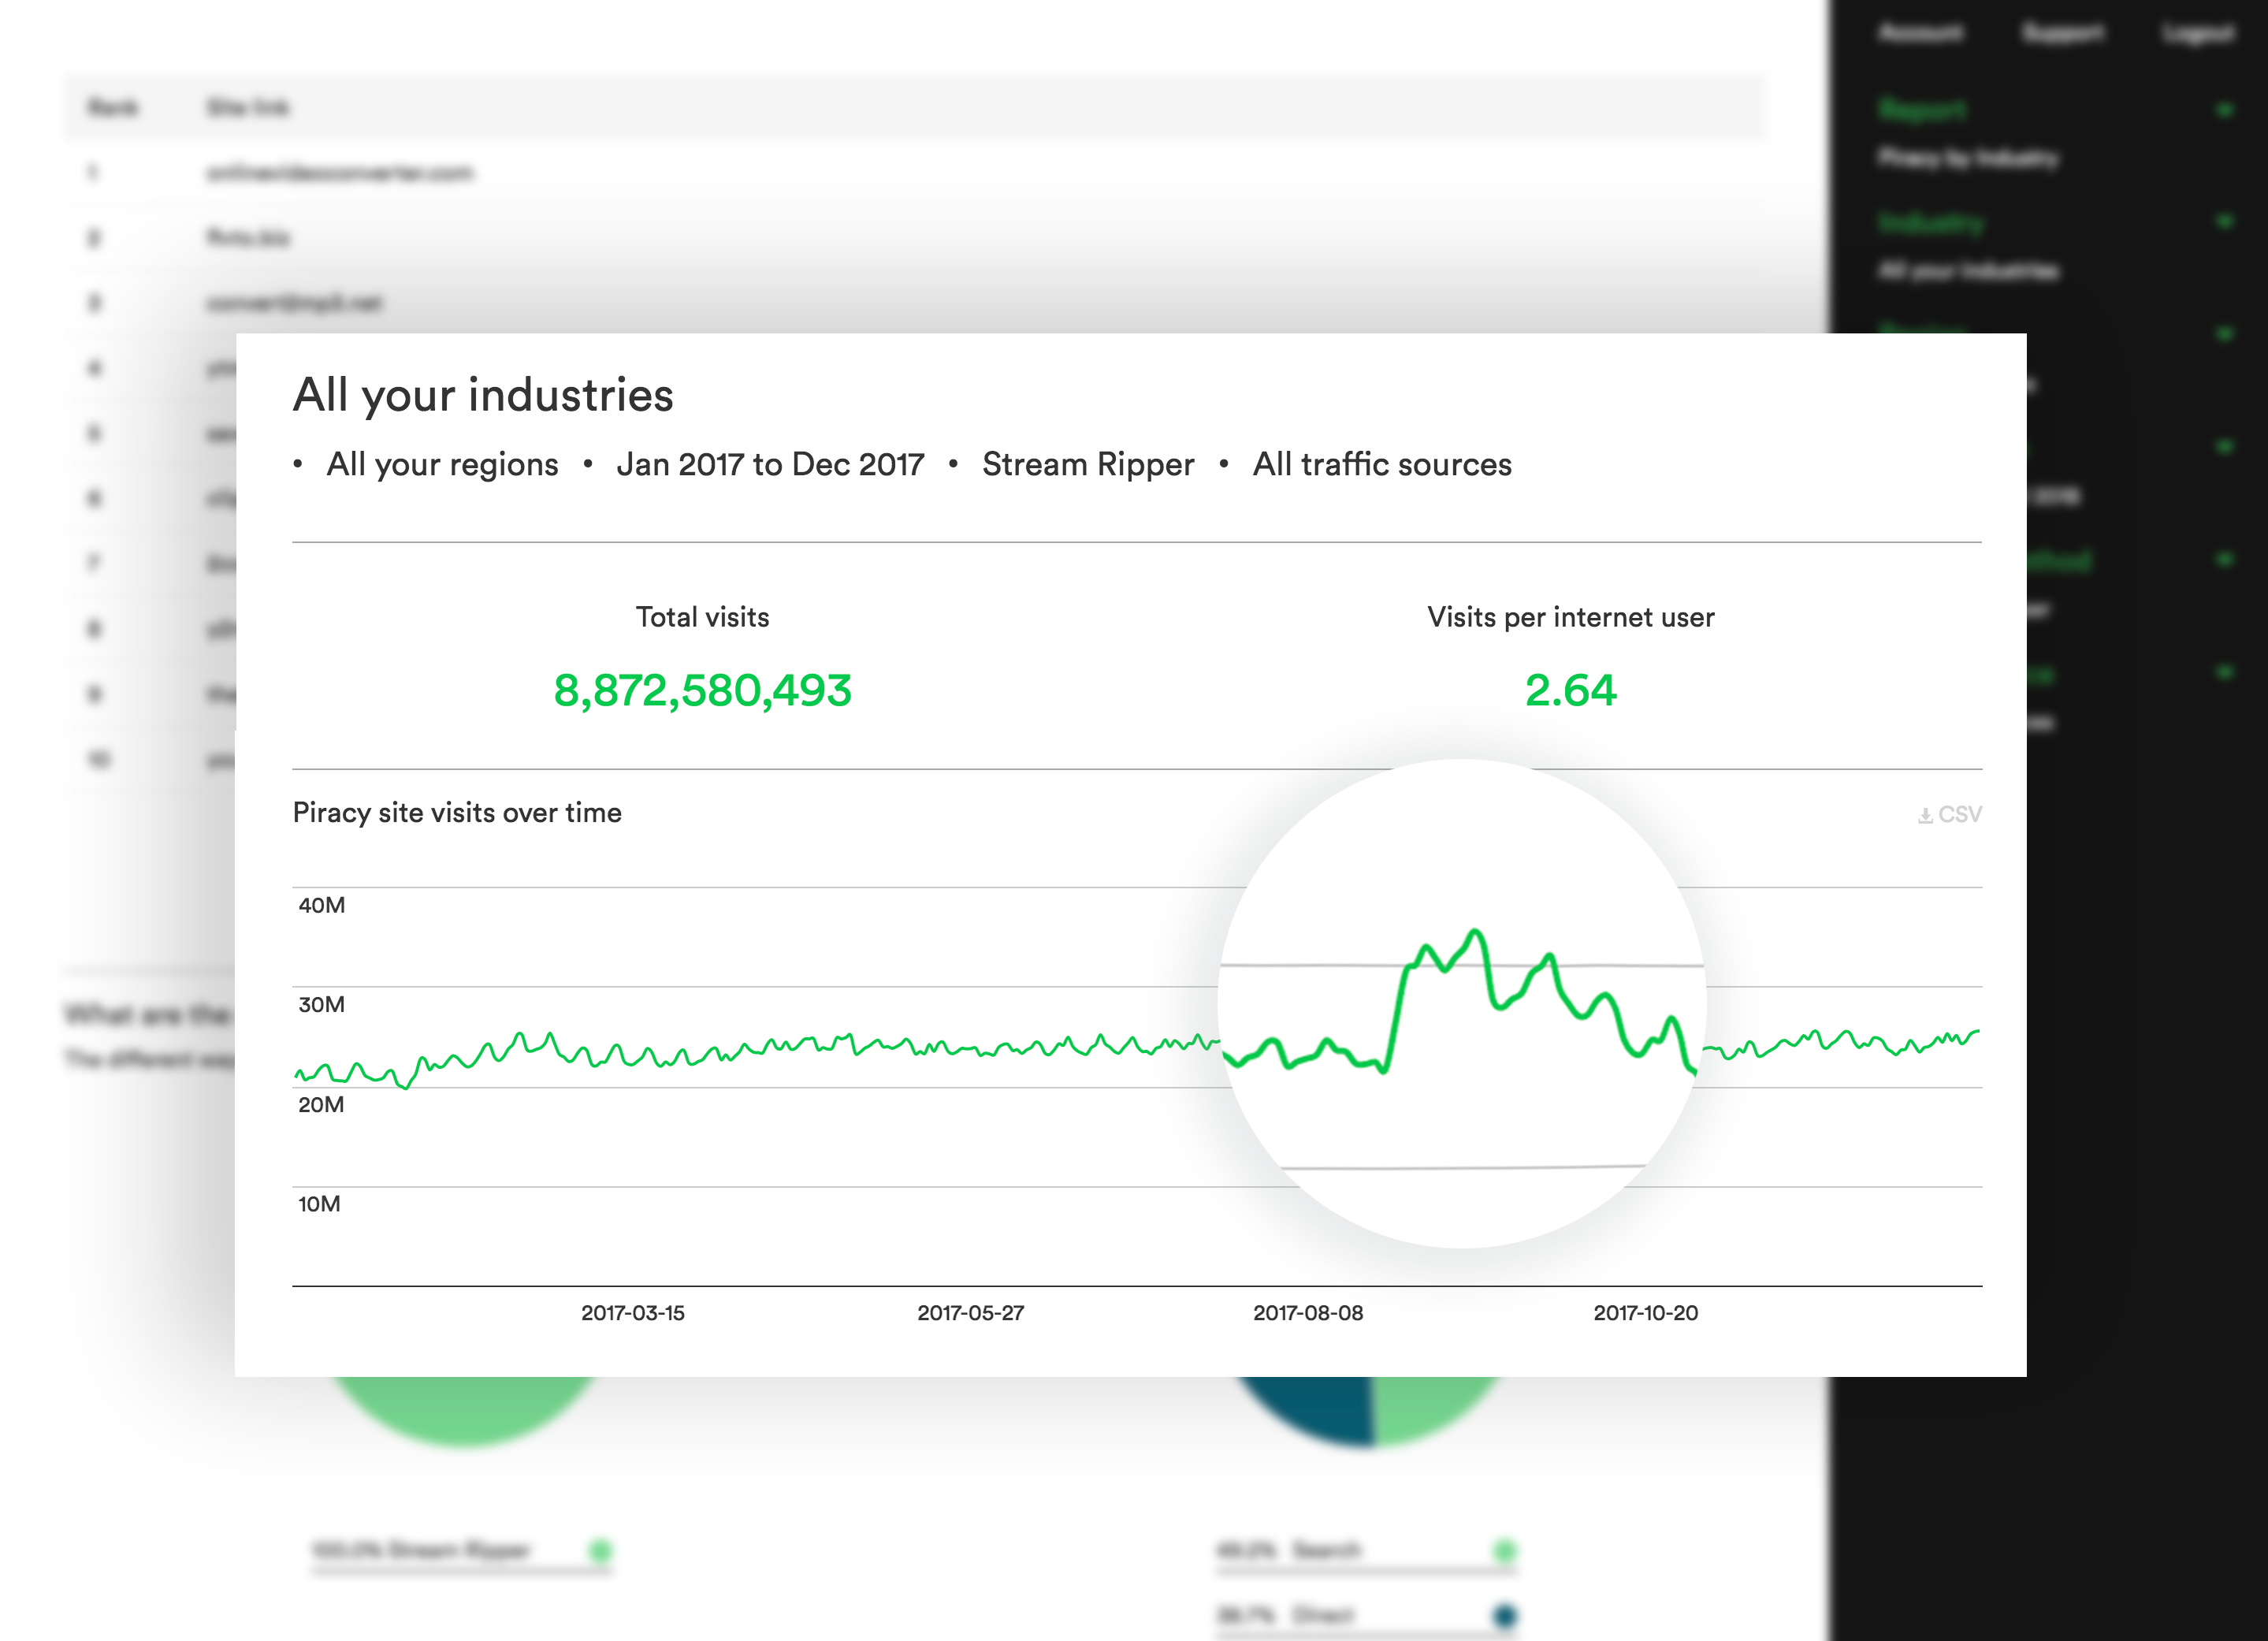 Tracking stream ripper demand with MUSO Discover